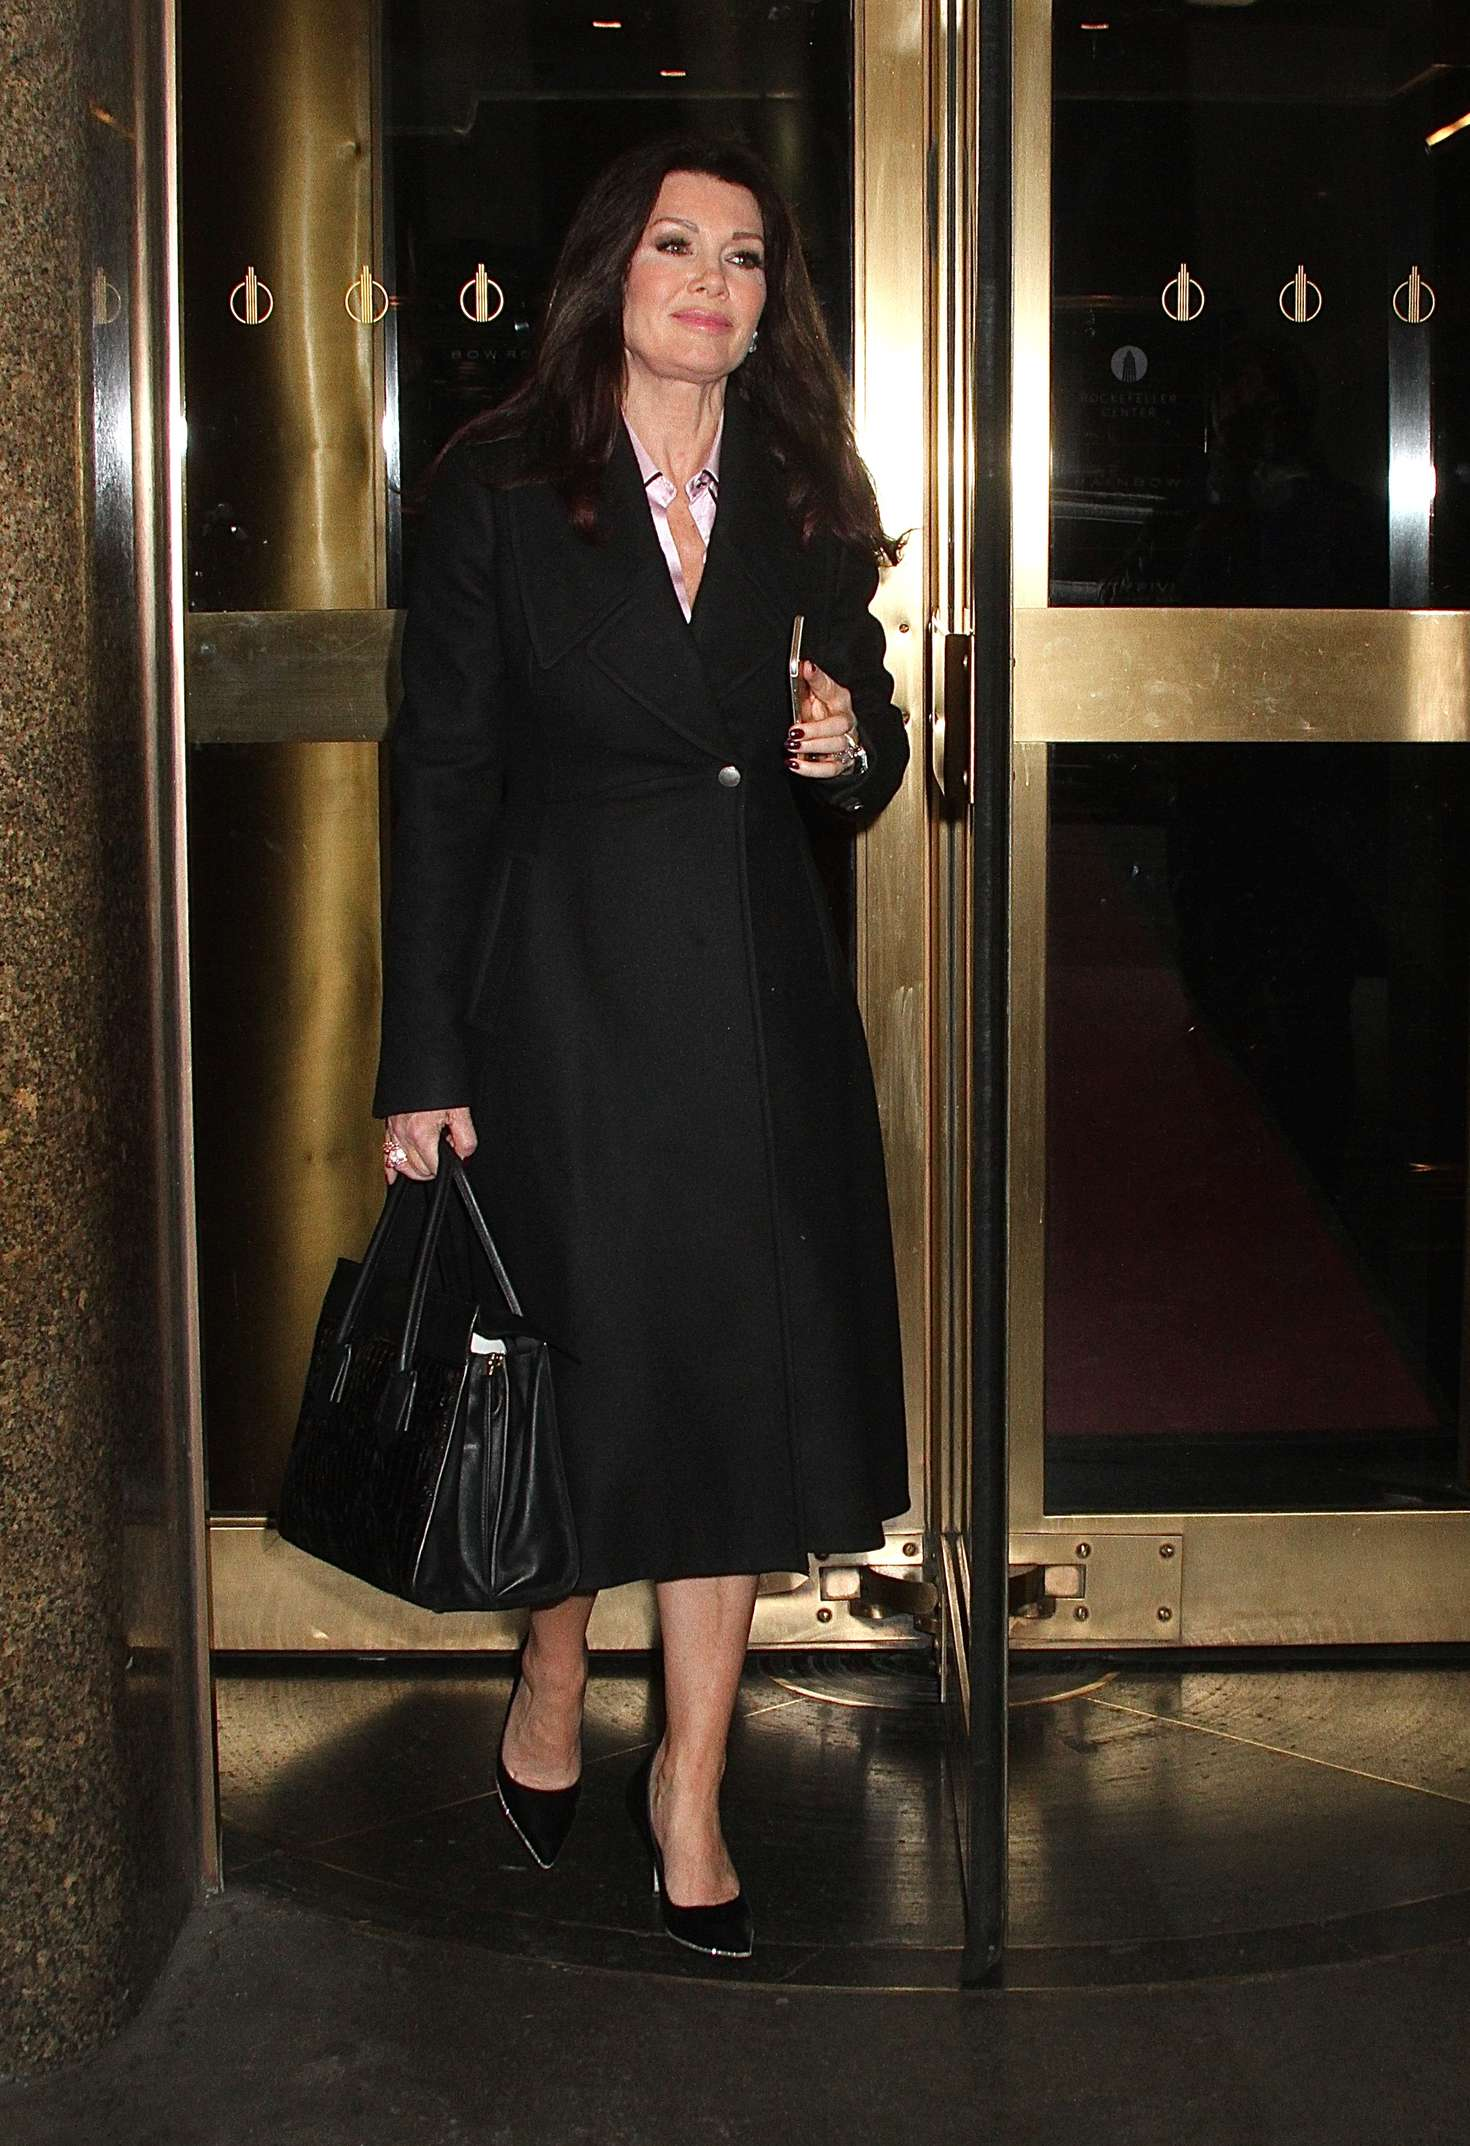 Lisa Vanderpump Leaving NBC in New York